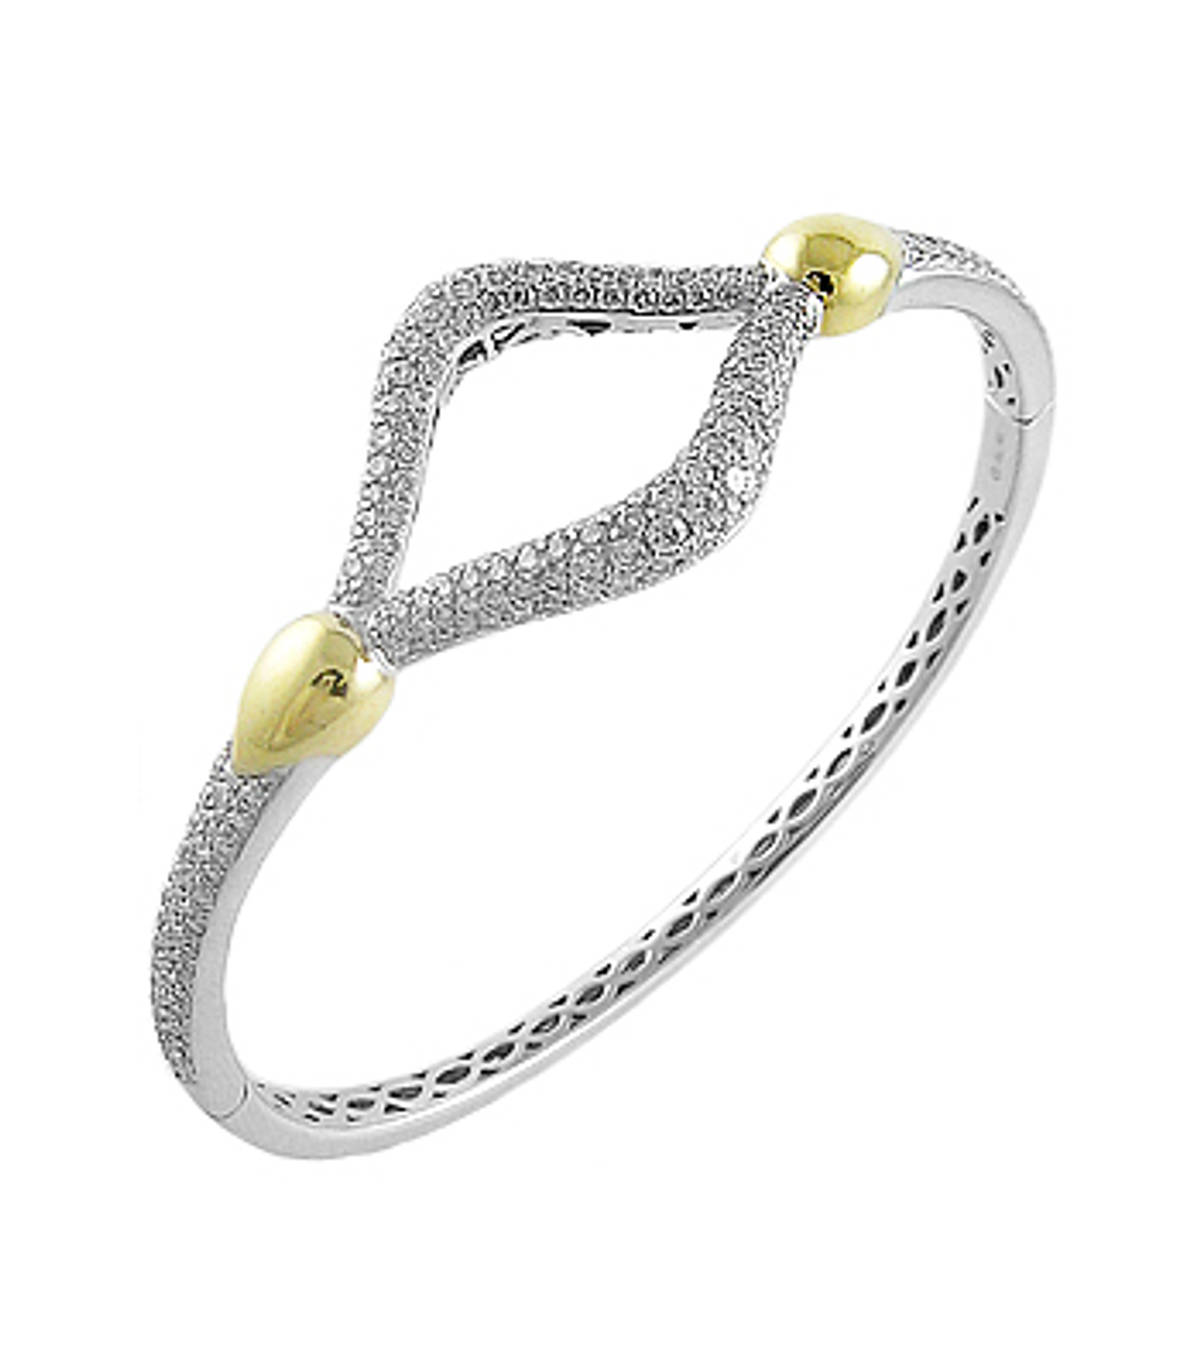 18k yellow/white gold pave set brilliant cut diamond open centre bangle Total diamond weight 2.67cts Made in Ireland